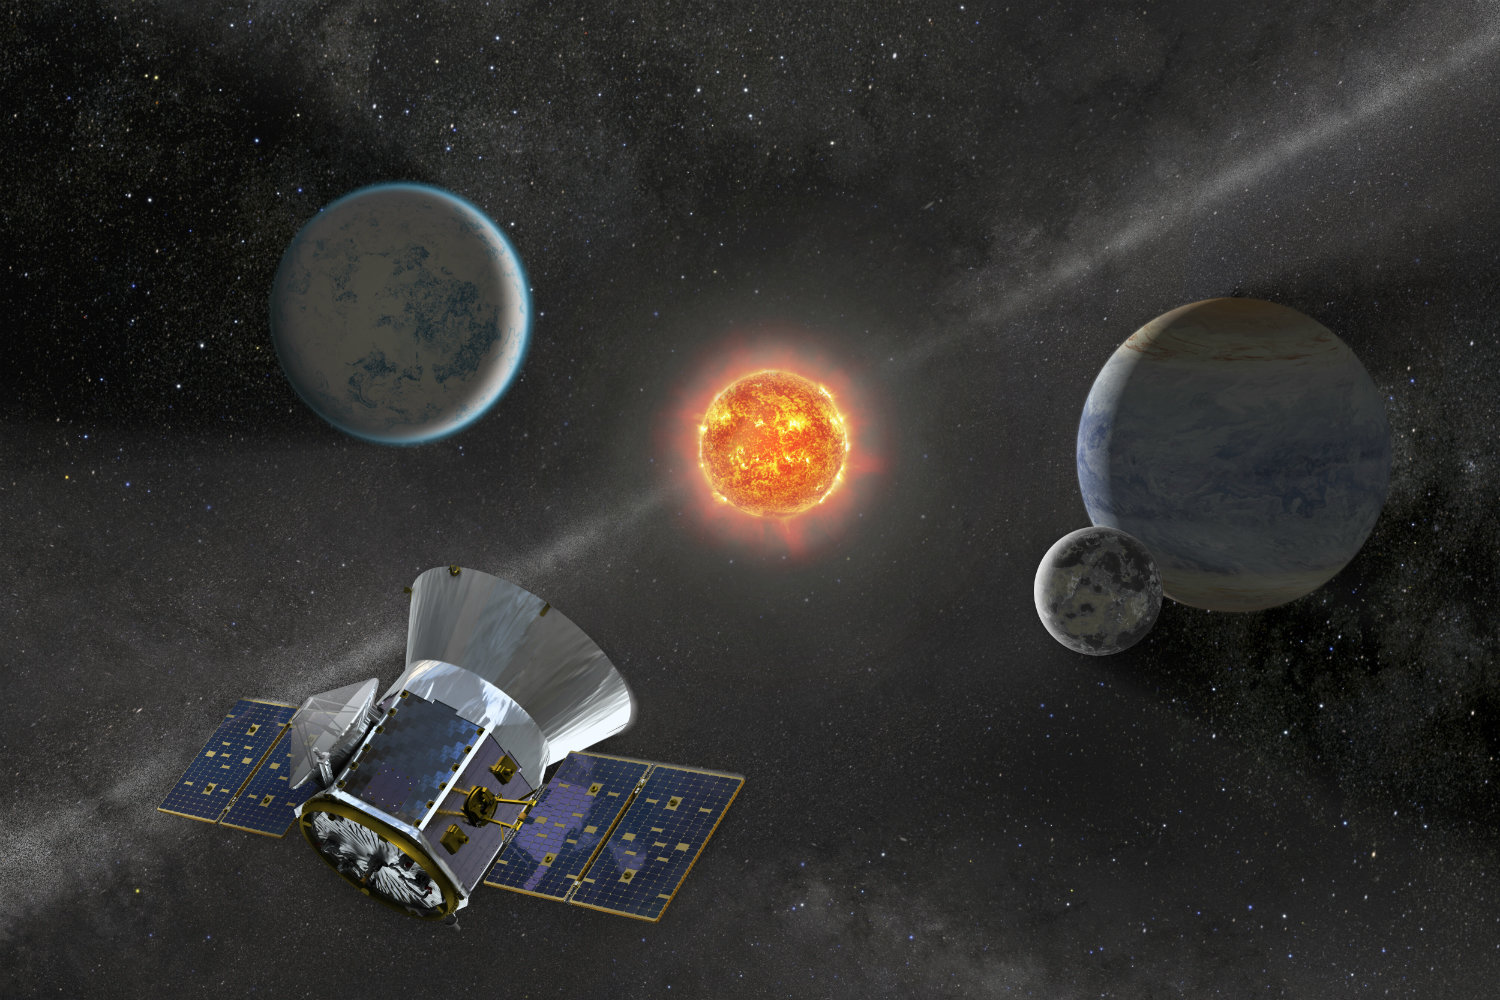 An artist's impression of the TESS mission in space.